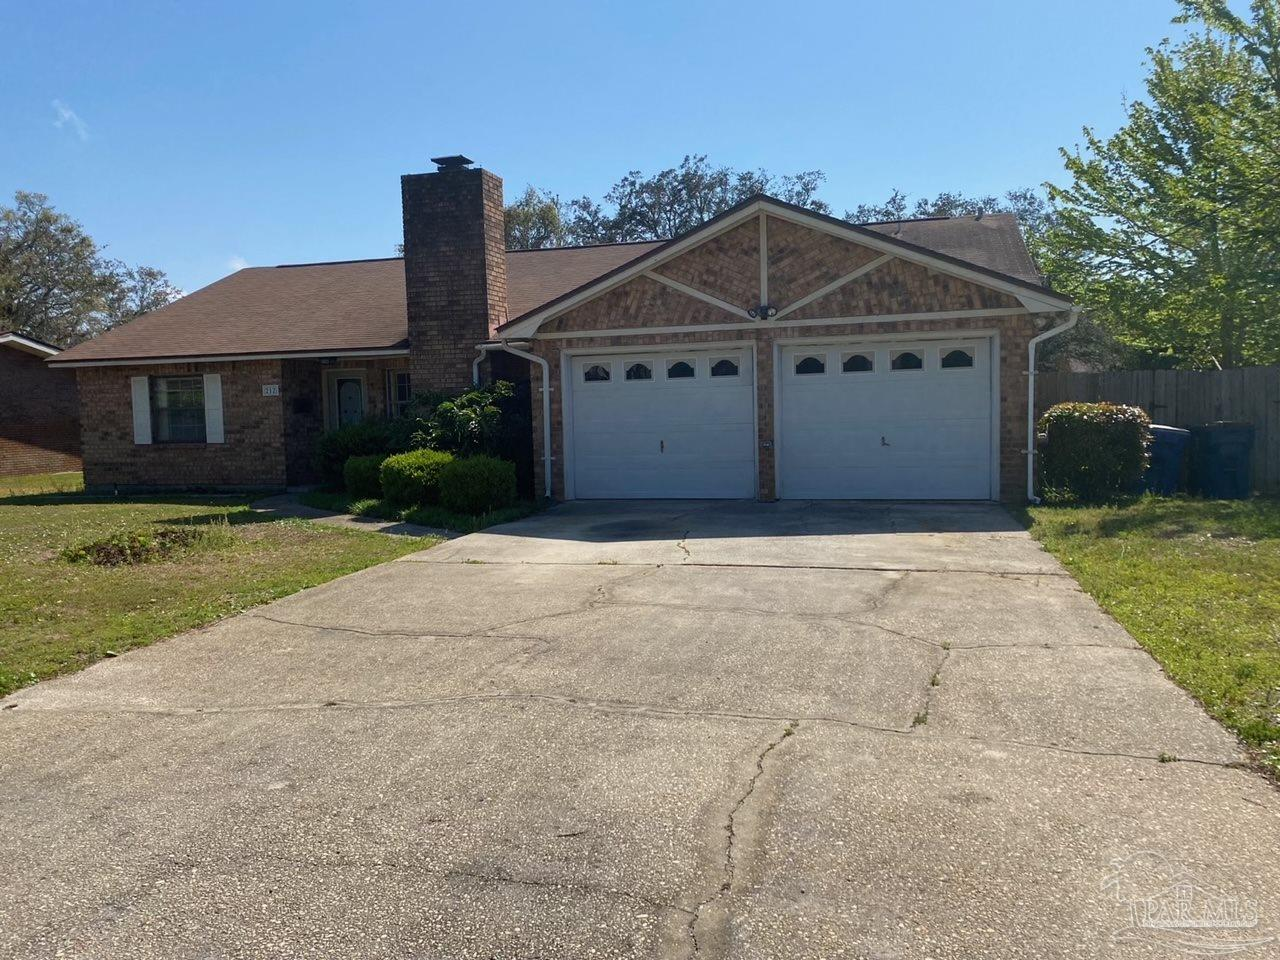 212 DOLPHIN ST, Gulf Breeze, Florida 32561, 4 Bedrooms Bedrooms, ,3 BathroomsBathrooms,Single Family,For Sale,212 DOLPHIN ST,1,586495